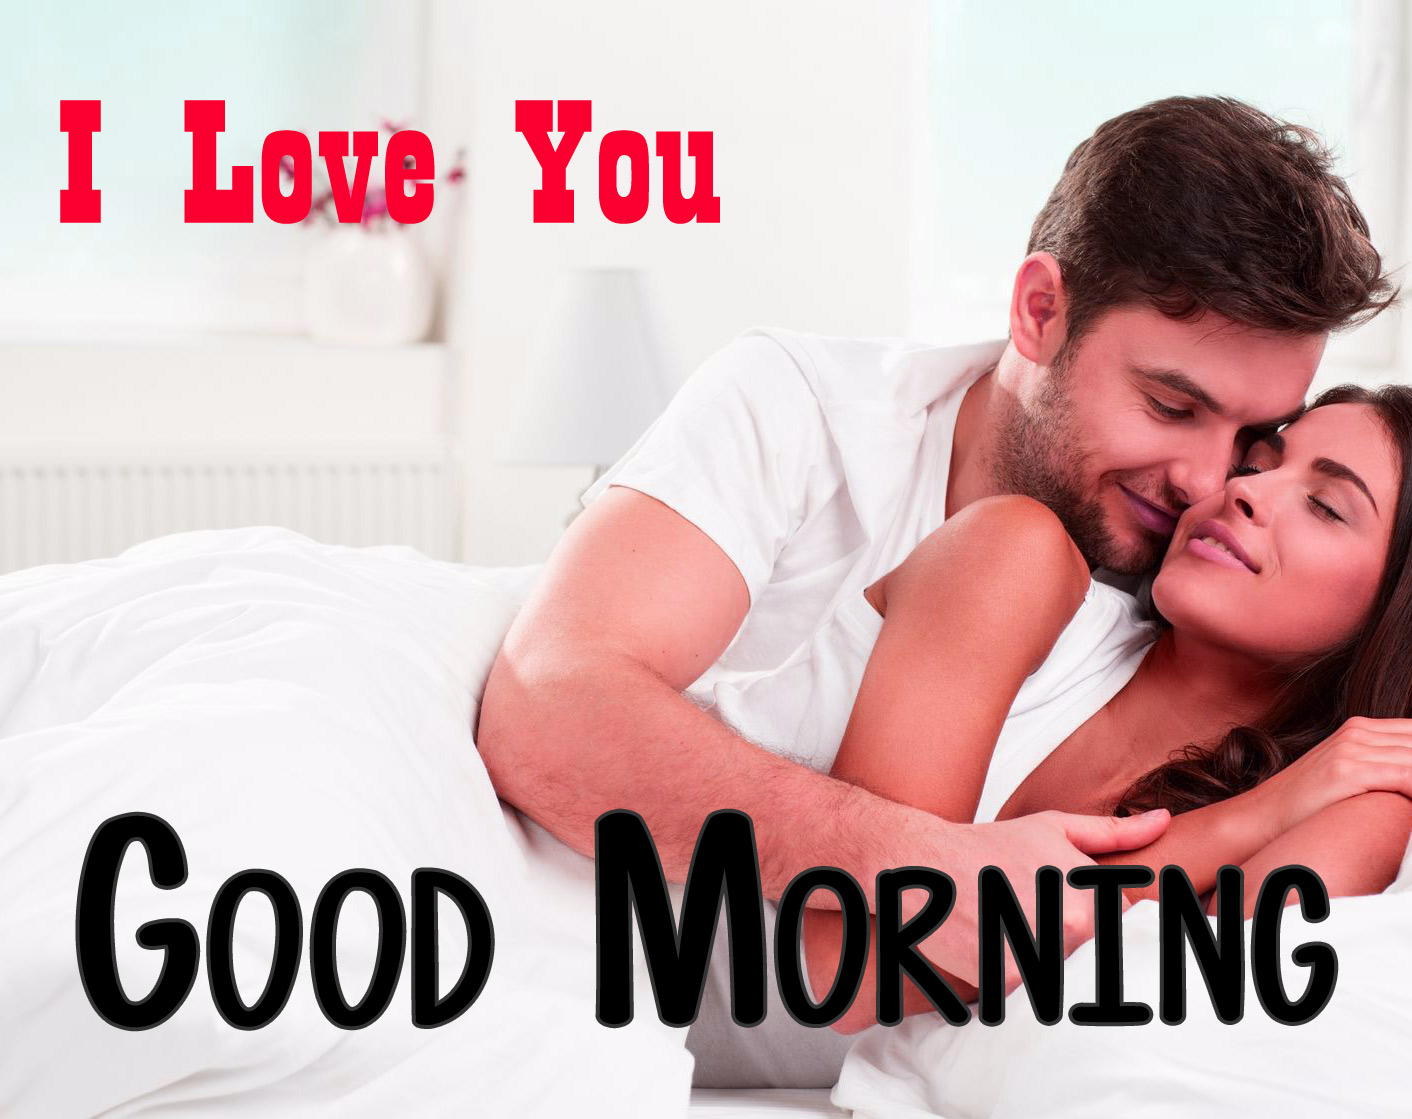 Husband Wife Romantic Good Morning Images With I love You